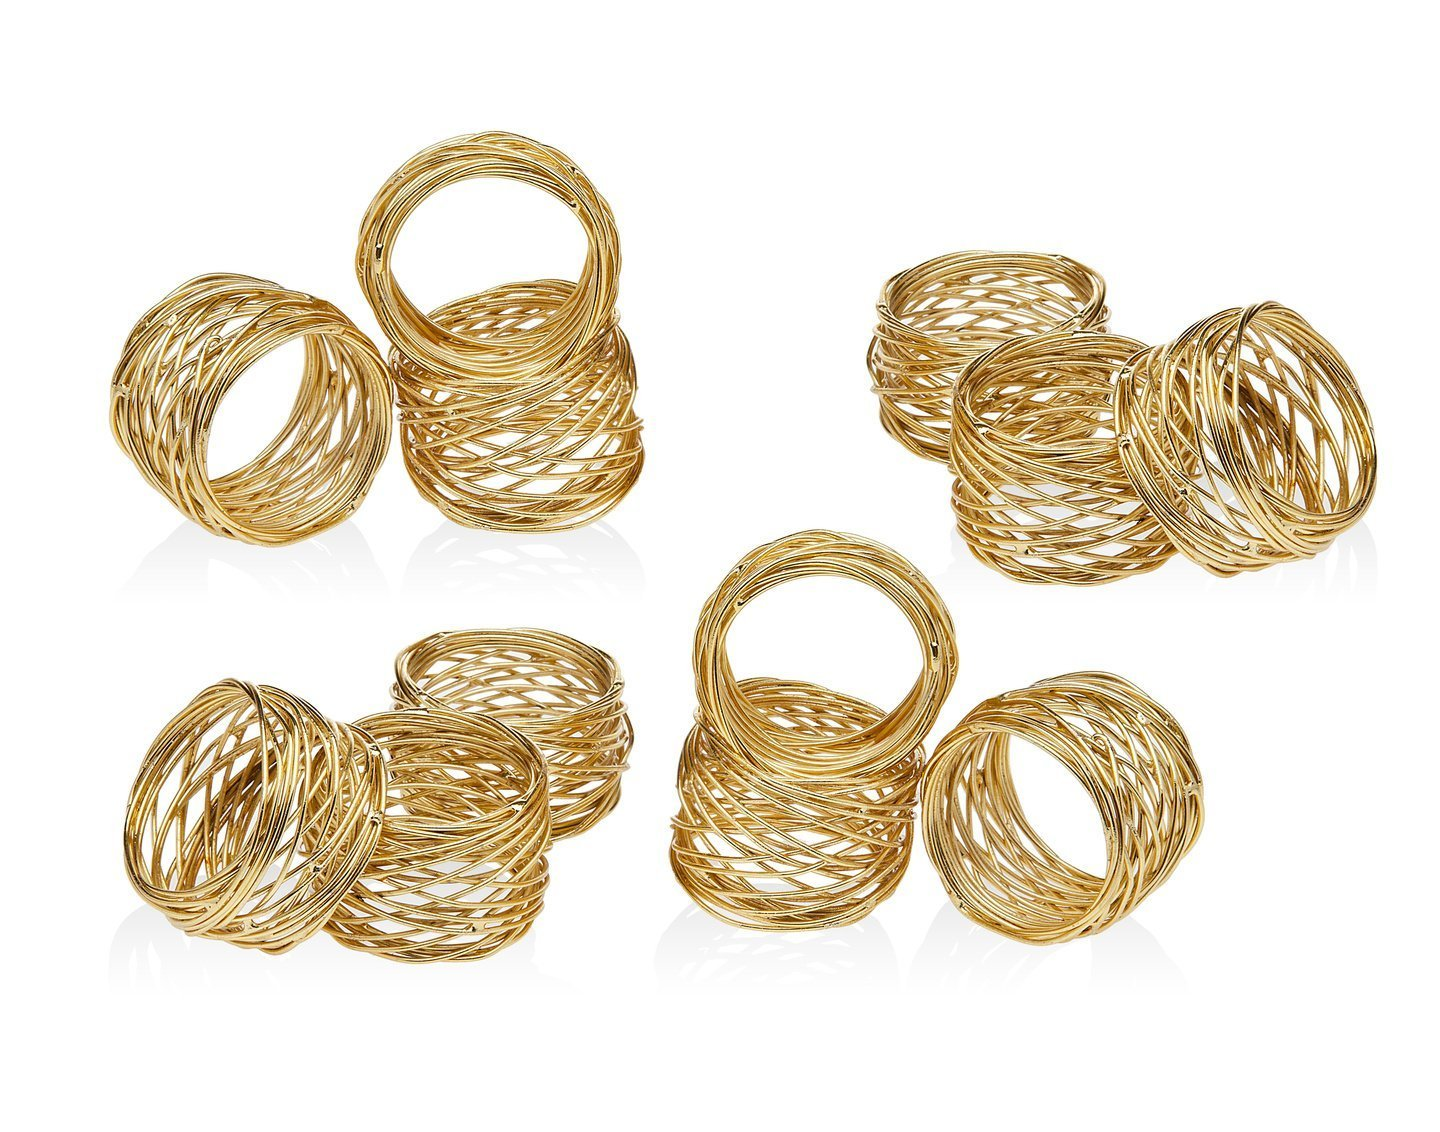 ITOS365 Handmade Round Mesh Napkin Rings Holder for Dinning Table Parties Everyday Set of 12